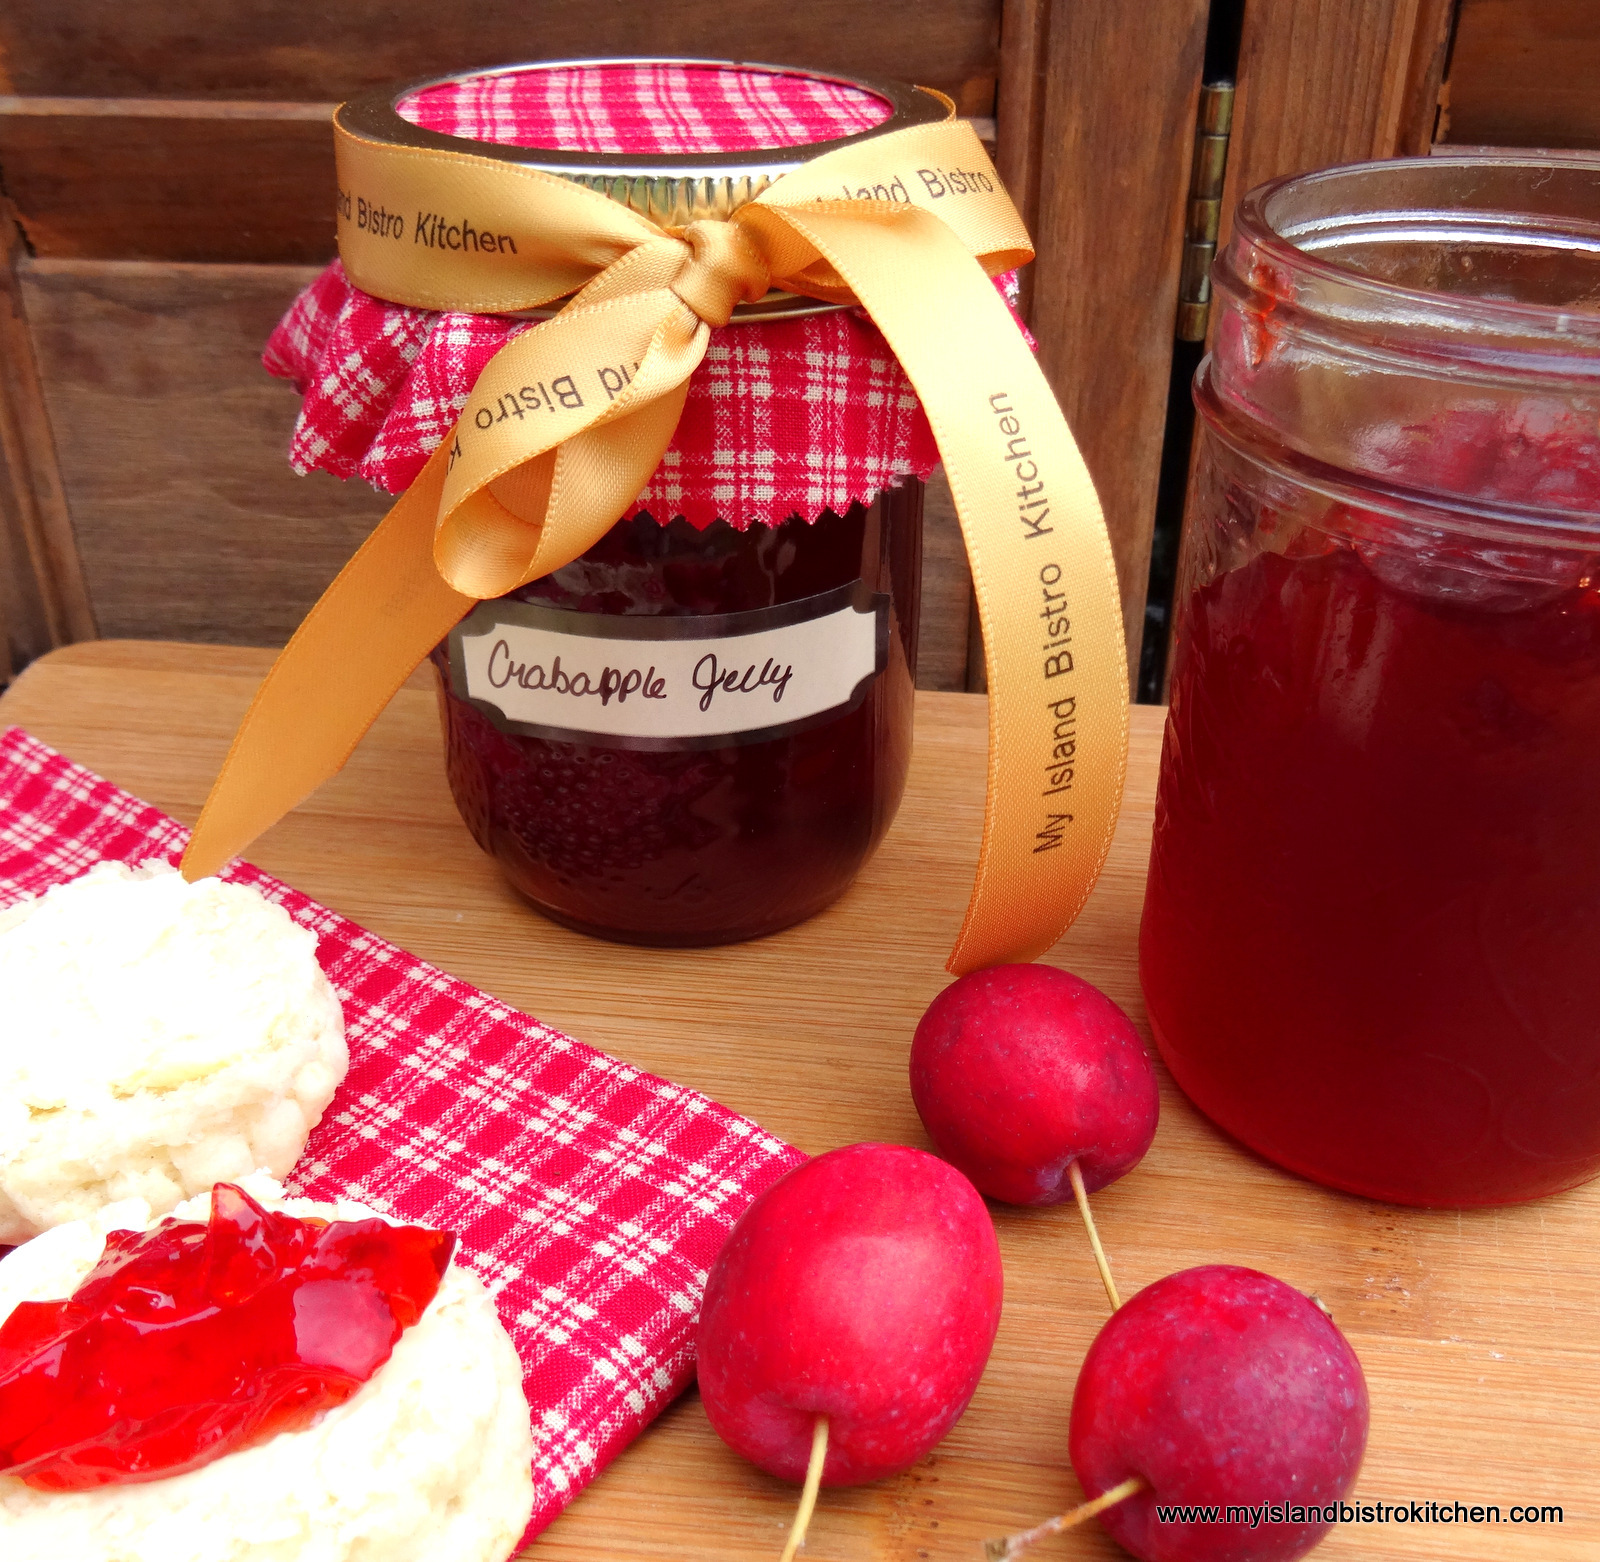 Bottles of Red Crabapple Jelly